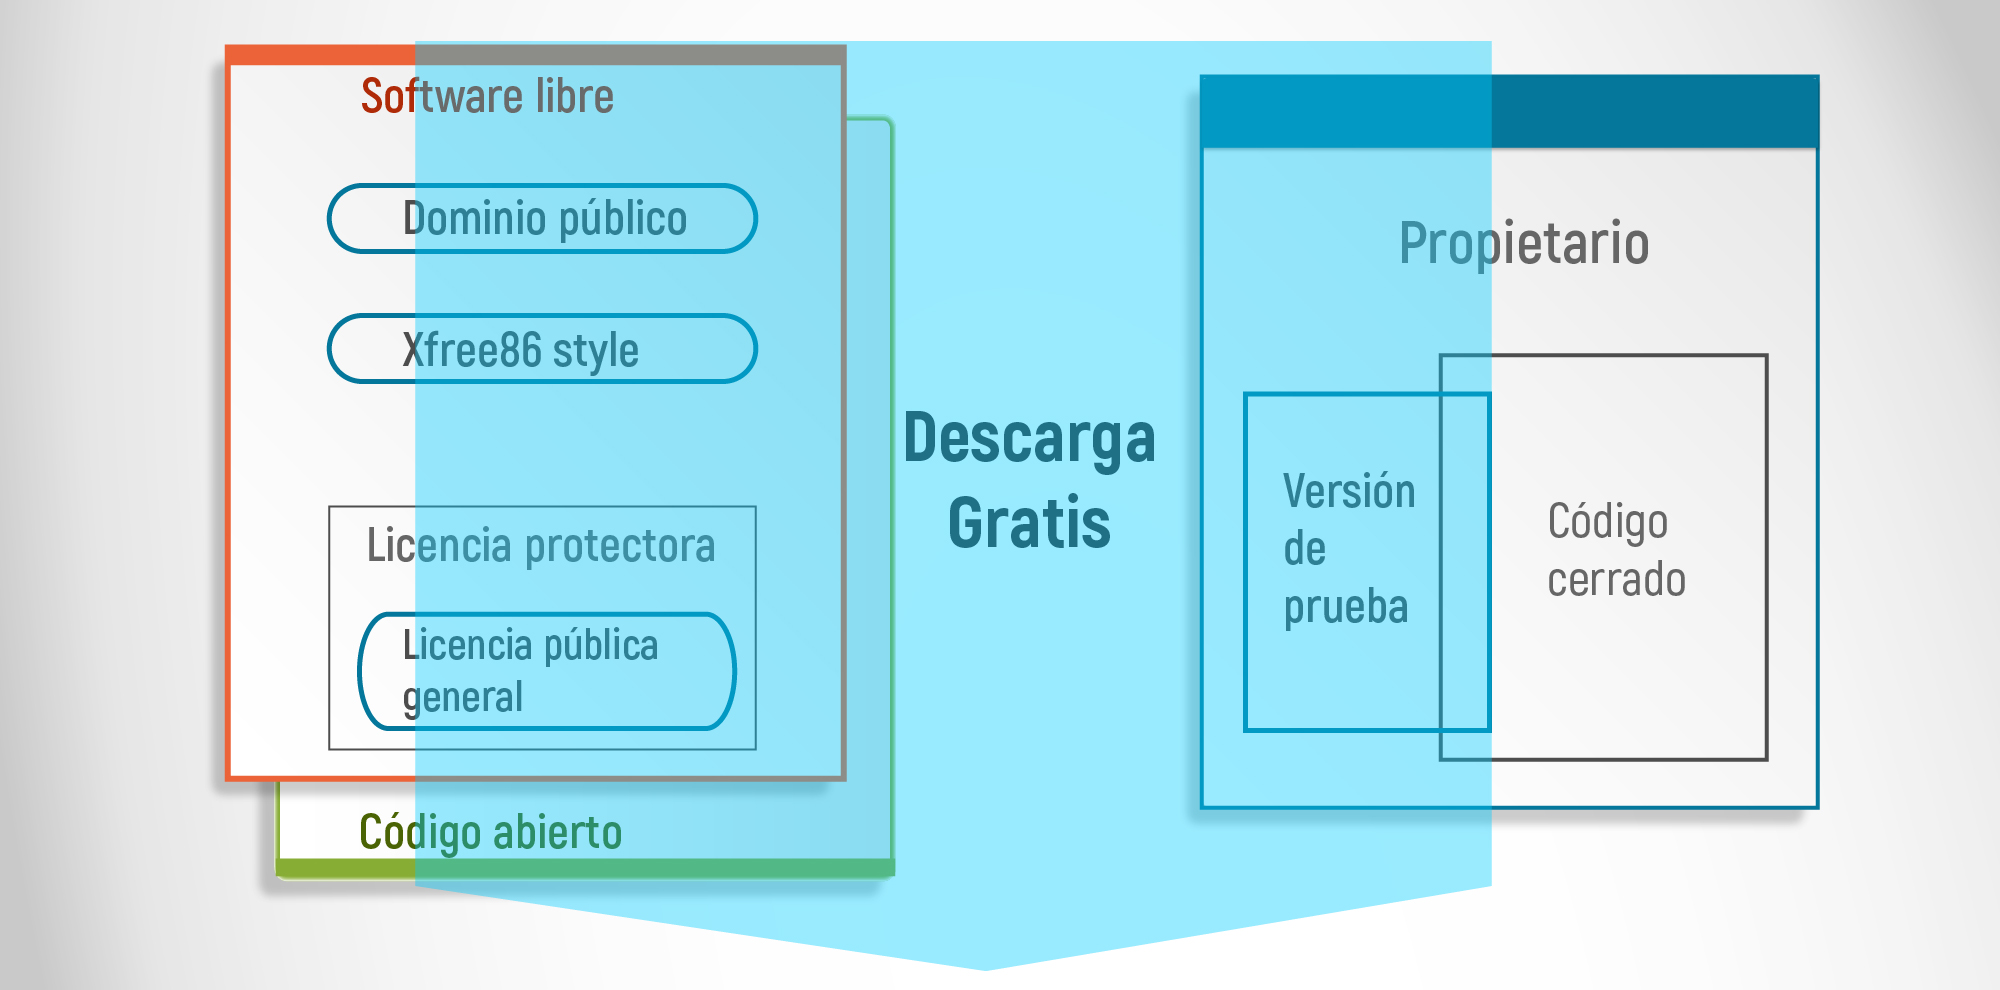 Licencias De Software Libre Software Libre Las Licencias De La Libertad Notired